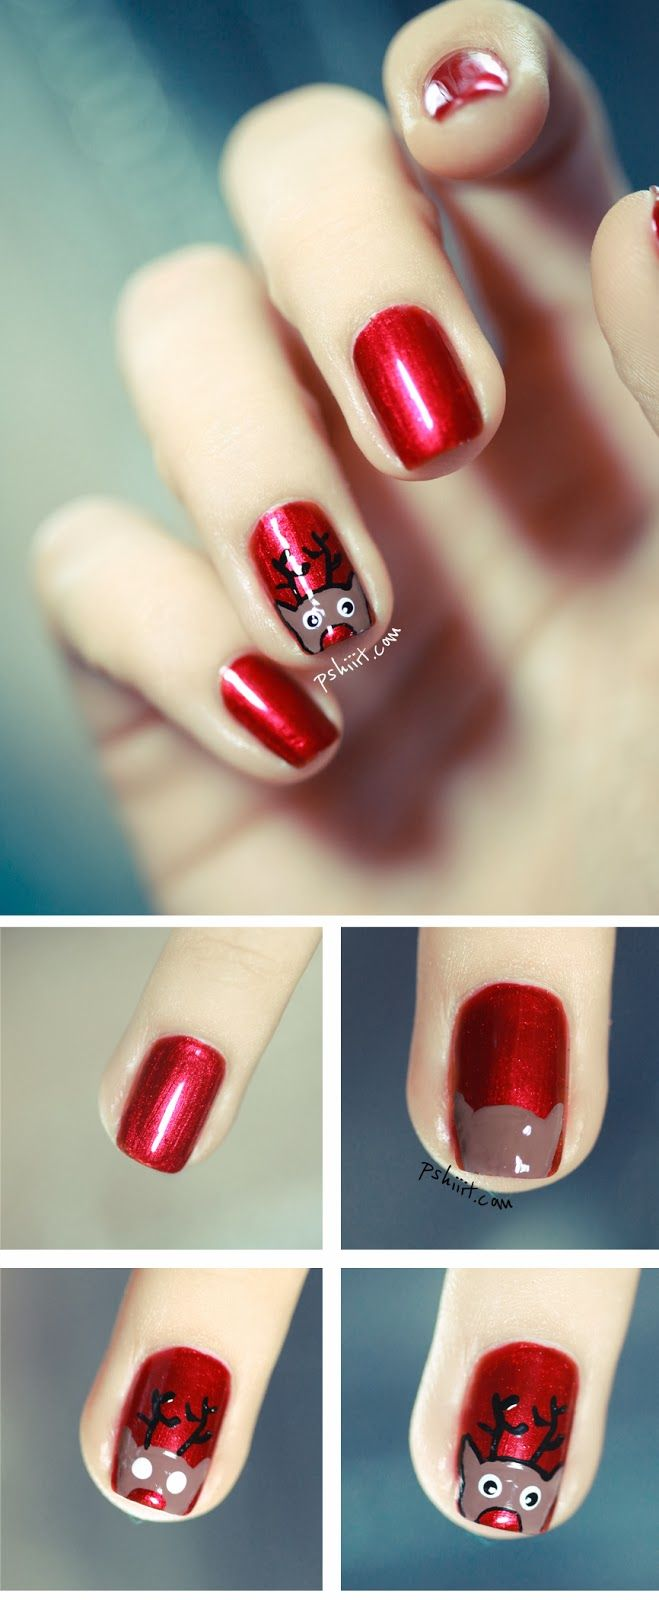 Simply Creative: Fun DIY Christmas Nail Art Tutorials | Merry ...